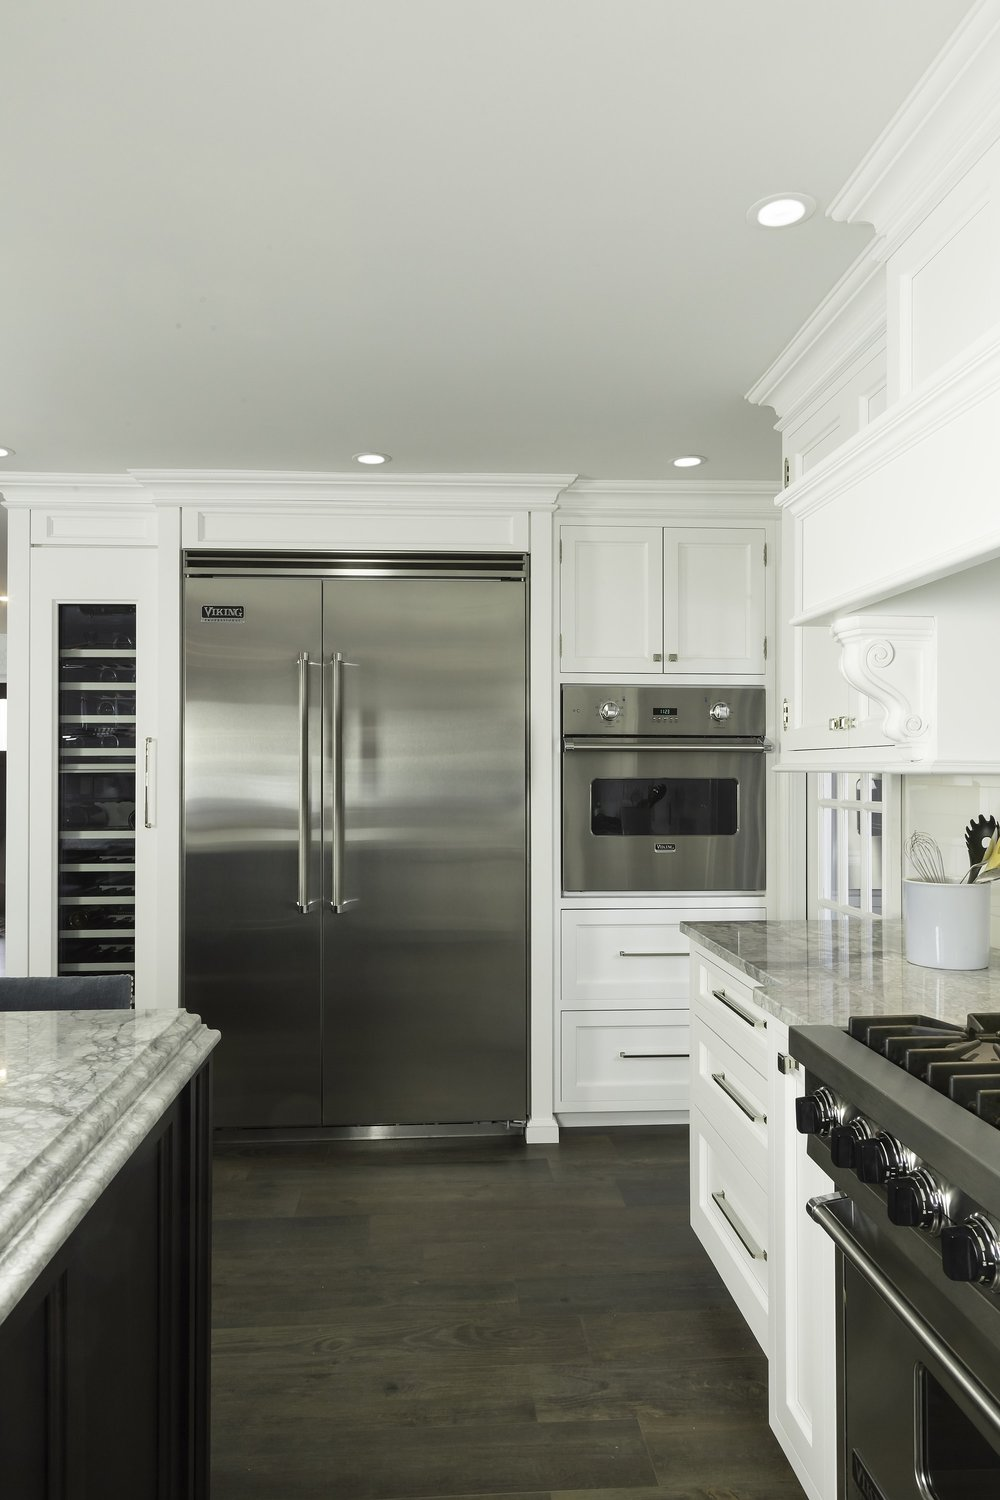 Transitional style kitchen with pull out drawer and upper cabinets